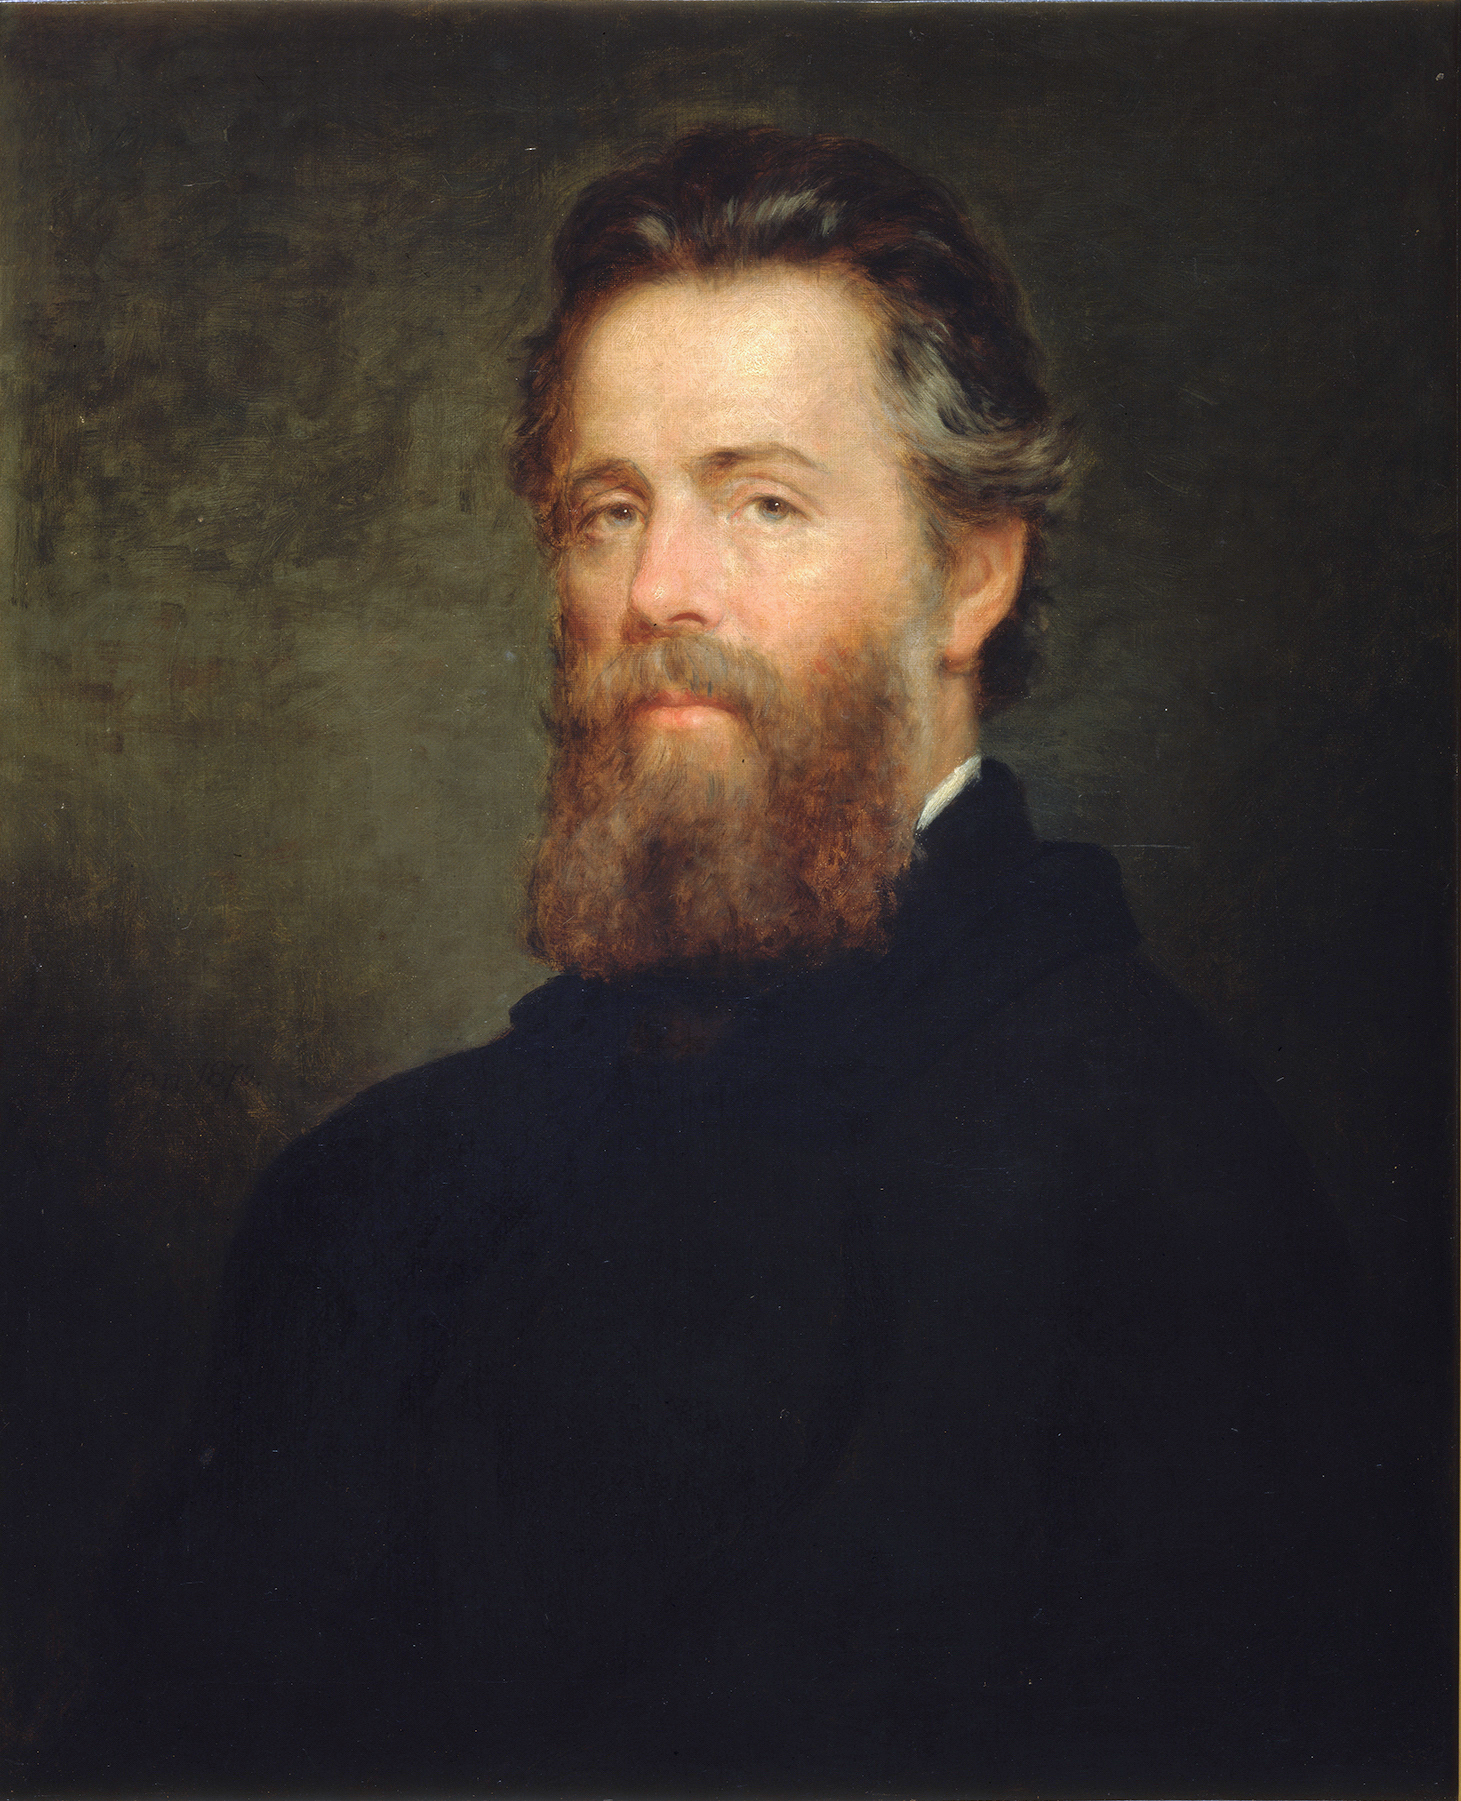 Herman Melville, 1870. Oil painting by [[Joseph Oriel Eaton]].